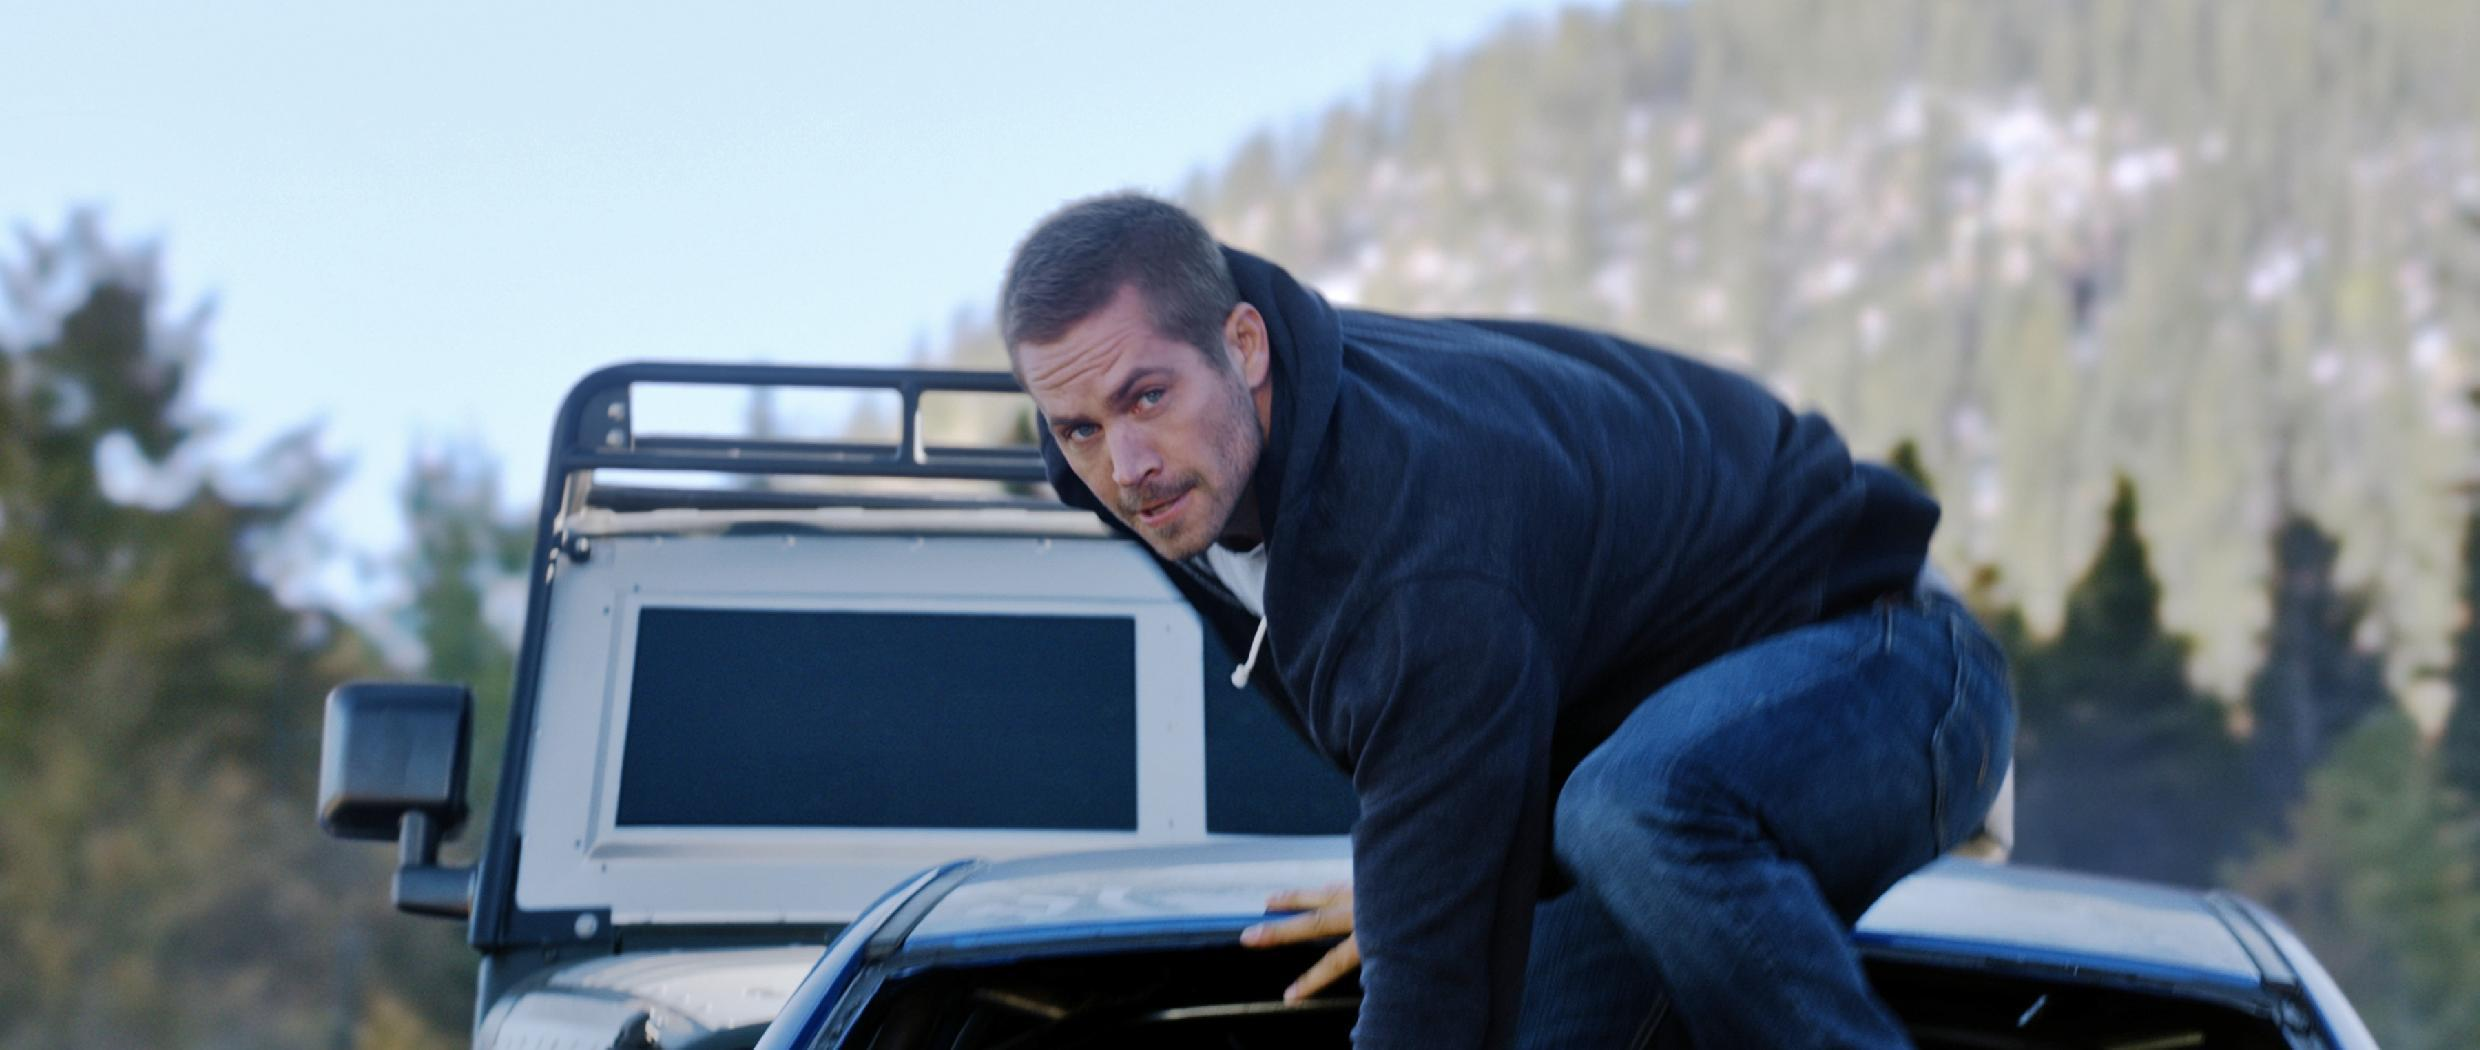 Review: 'Furious 7' drives hard with action, laughs, tribute